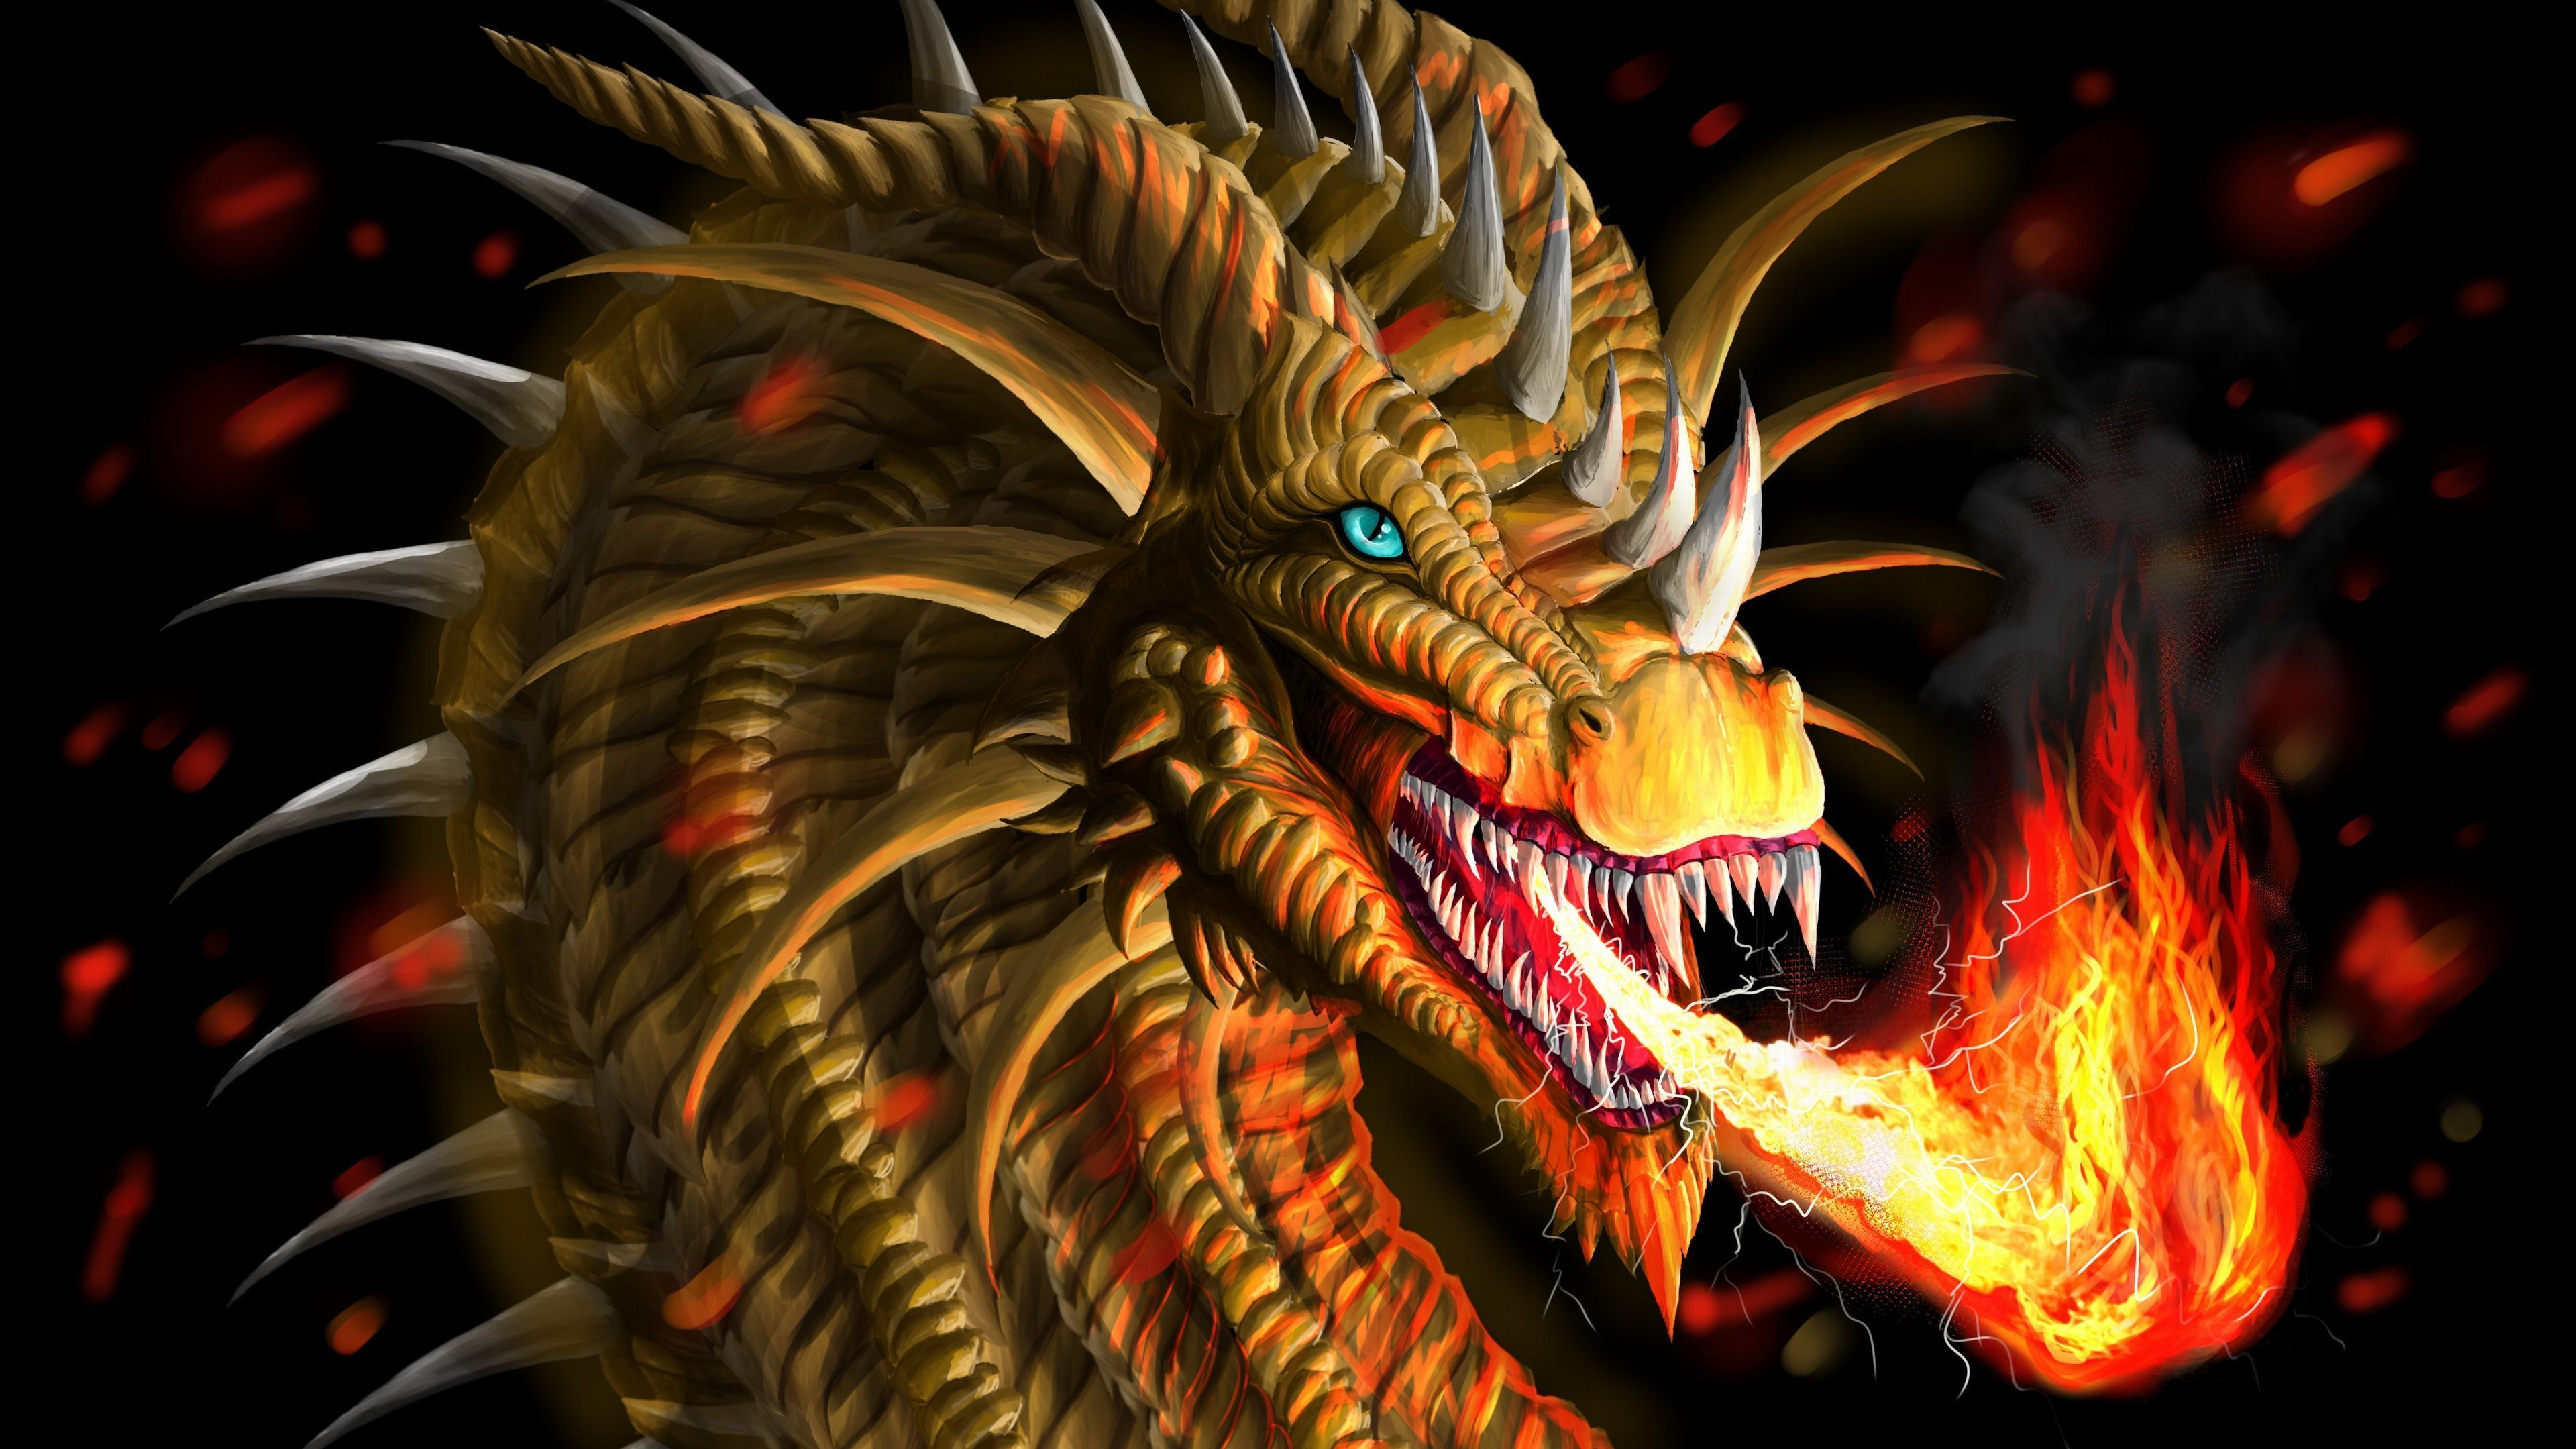 High Resolution Dragon Wallpapers Top Free High Resolution Dragon Backgrounds Wallpaperaccess